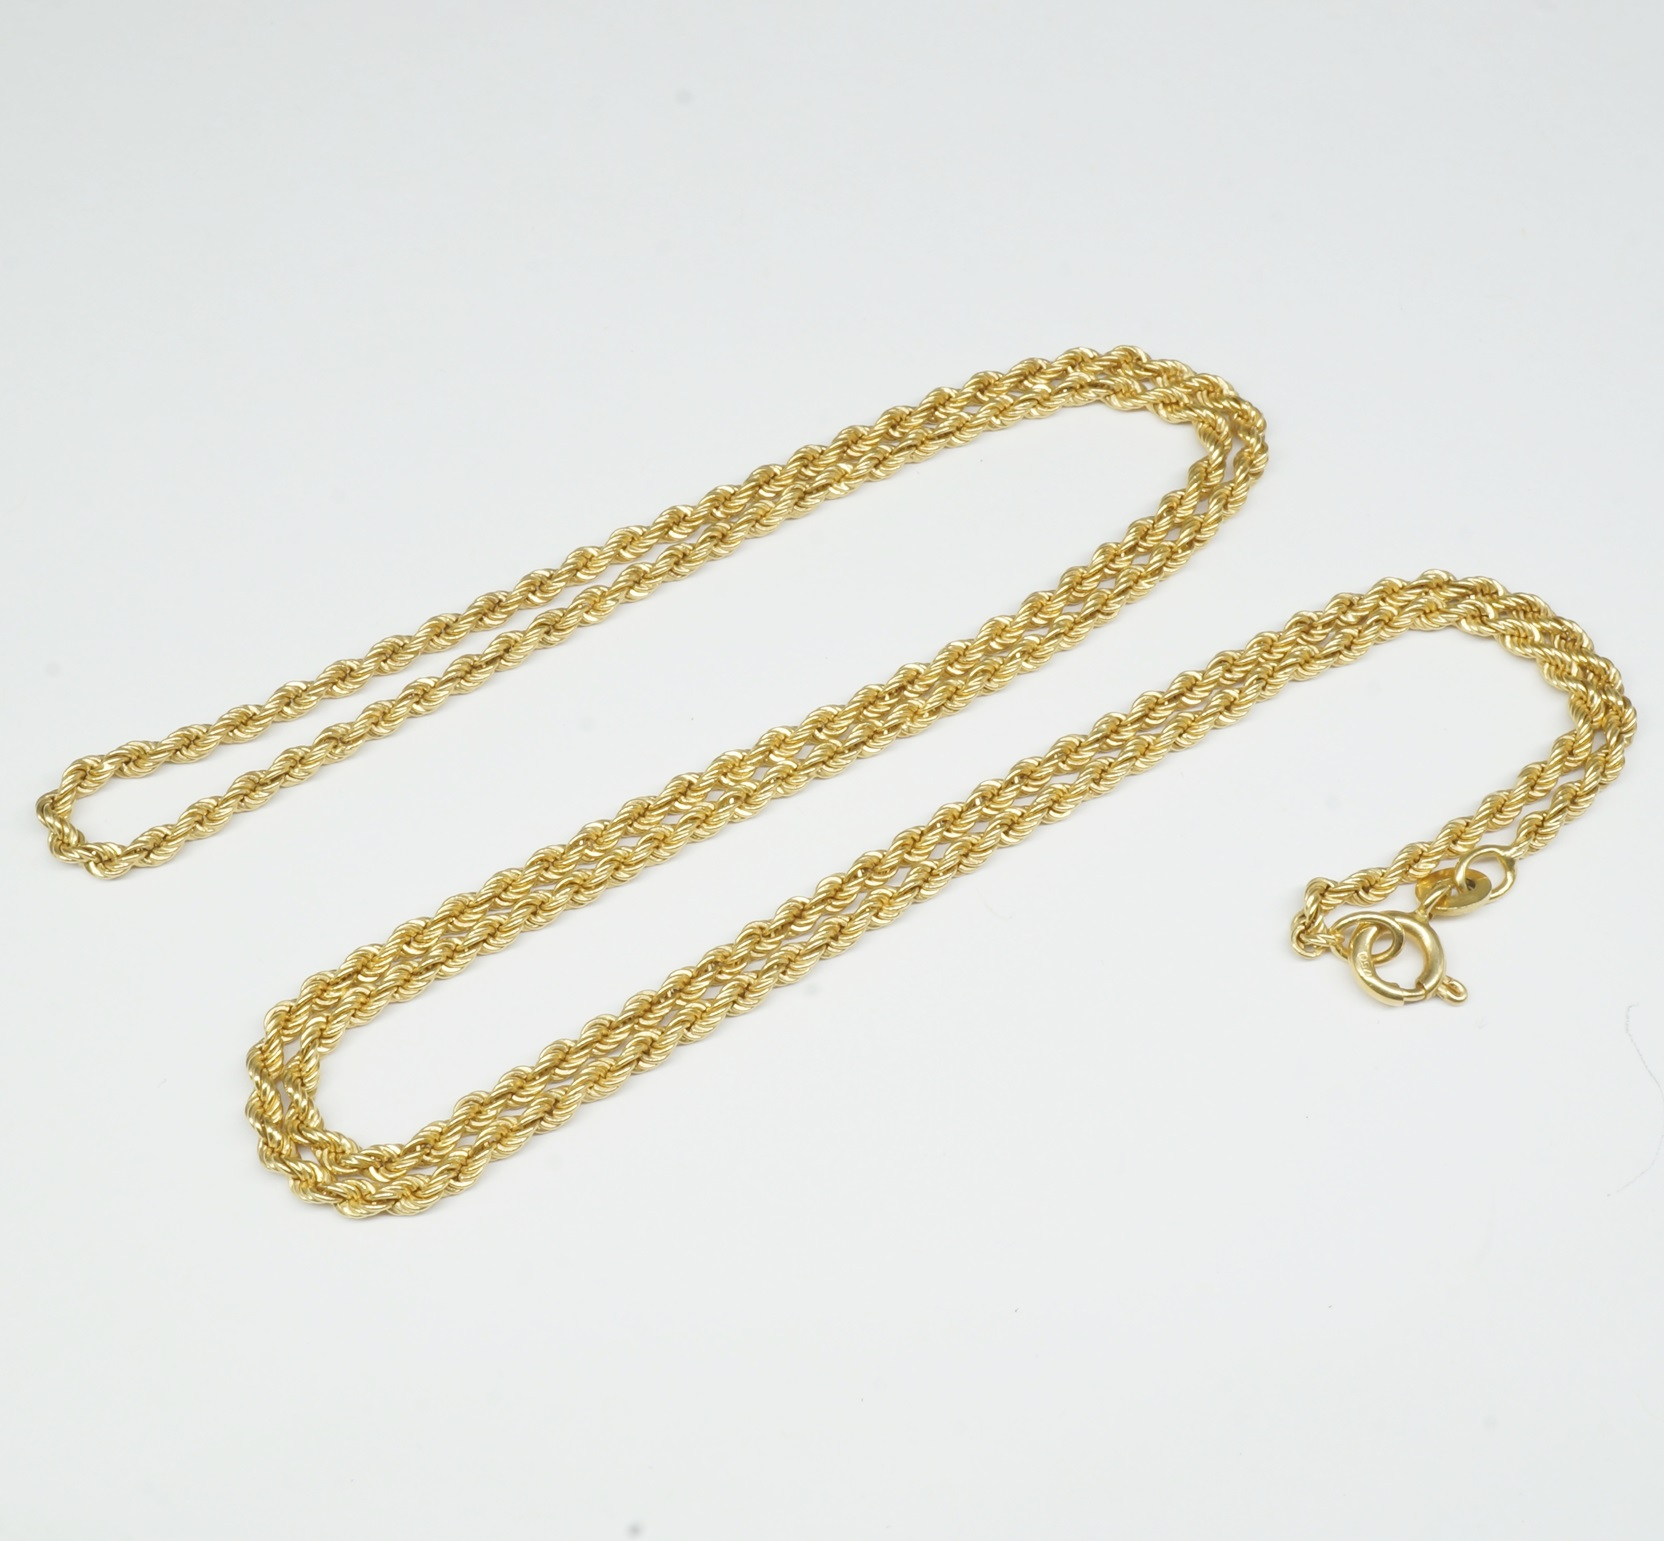 '18ct Yellow Gold Twisted Rope Chain'